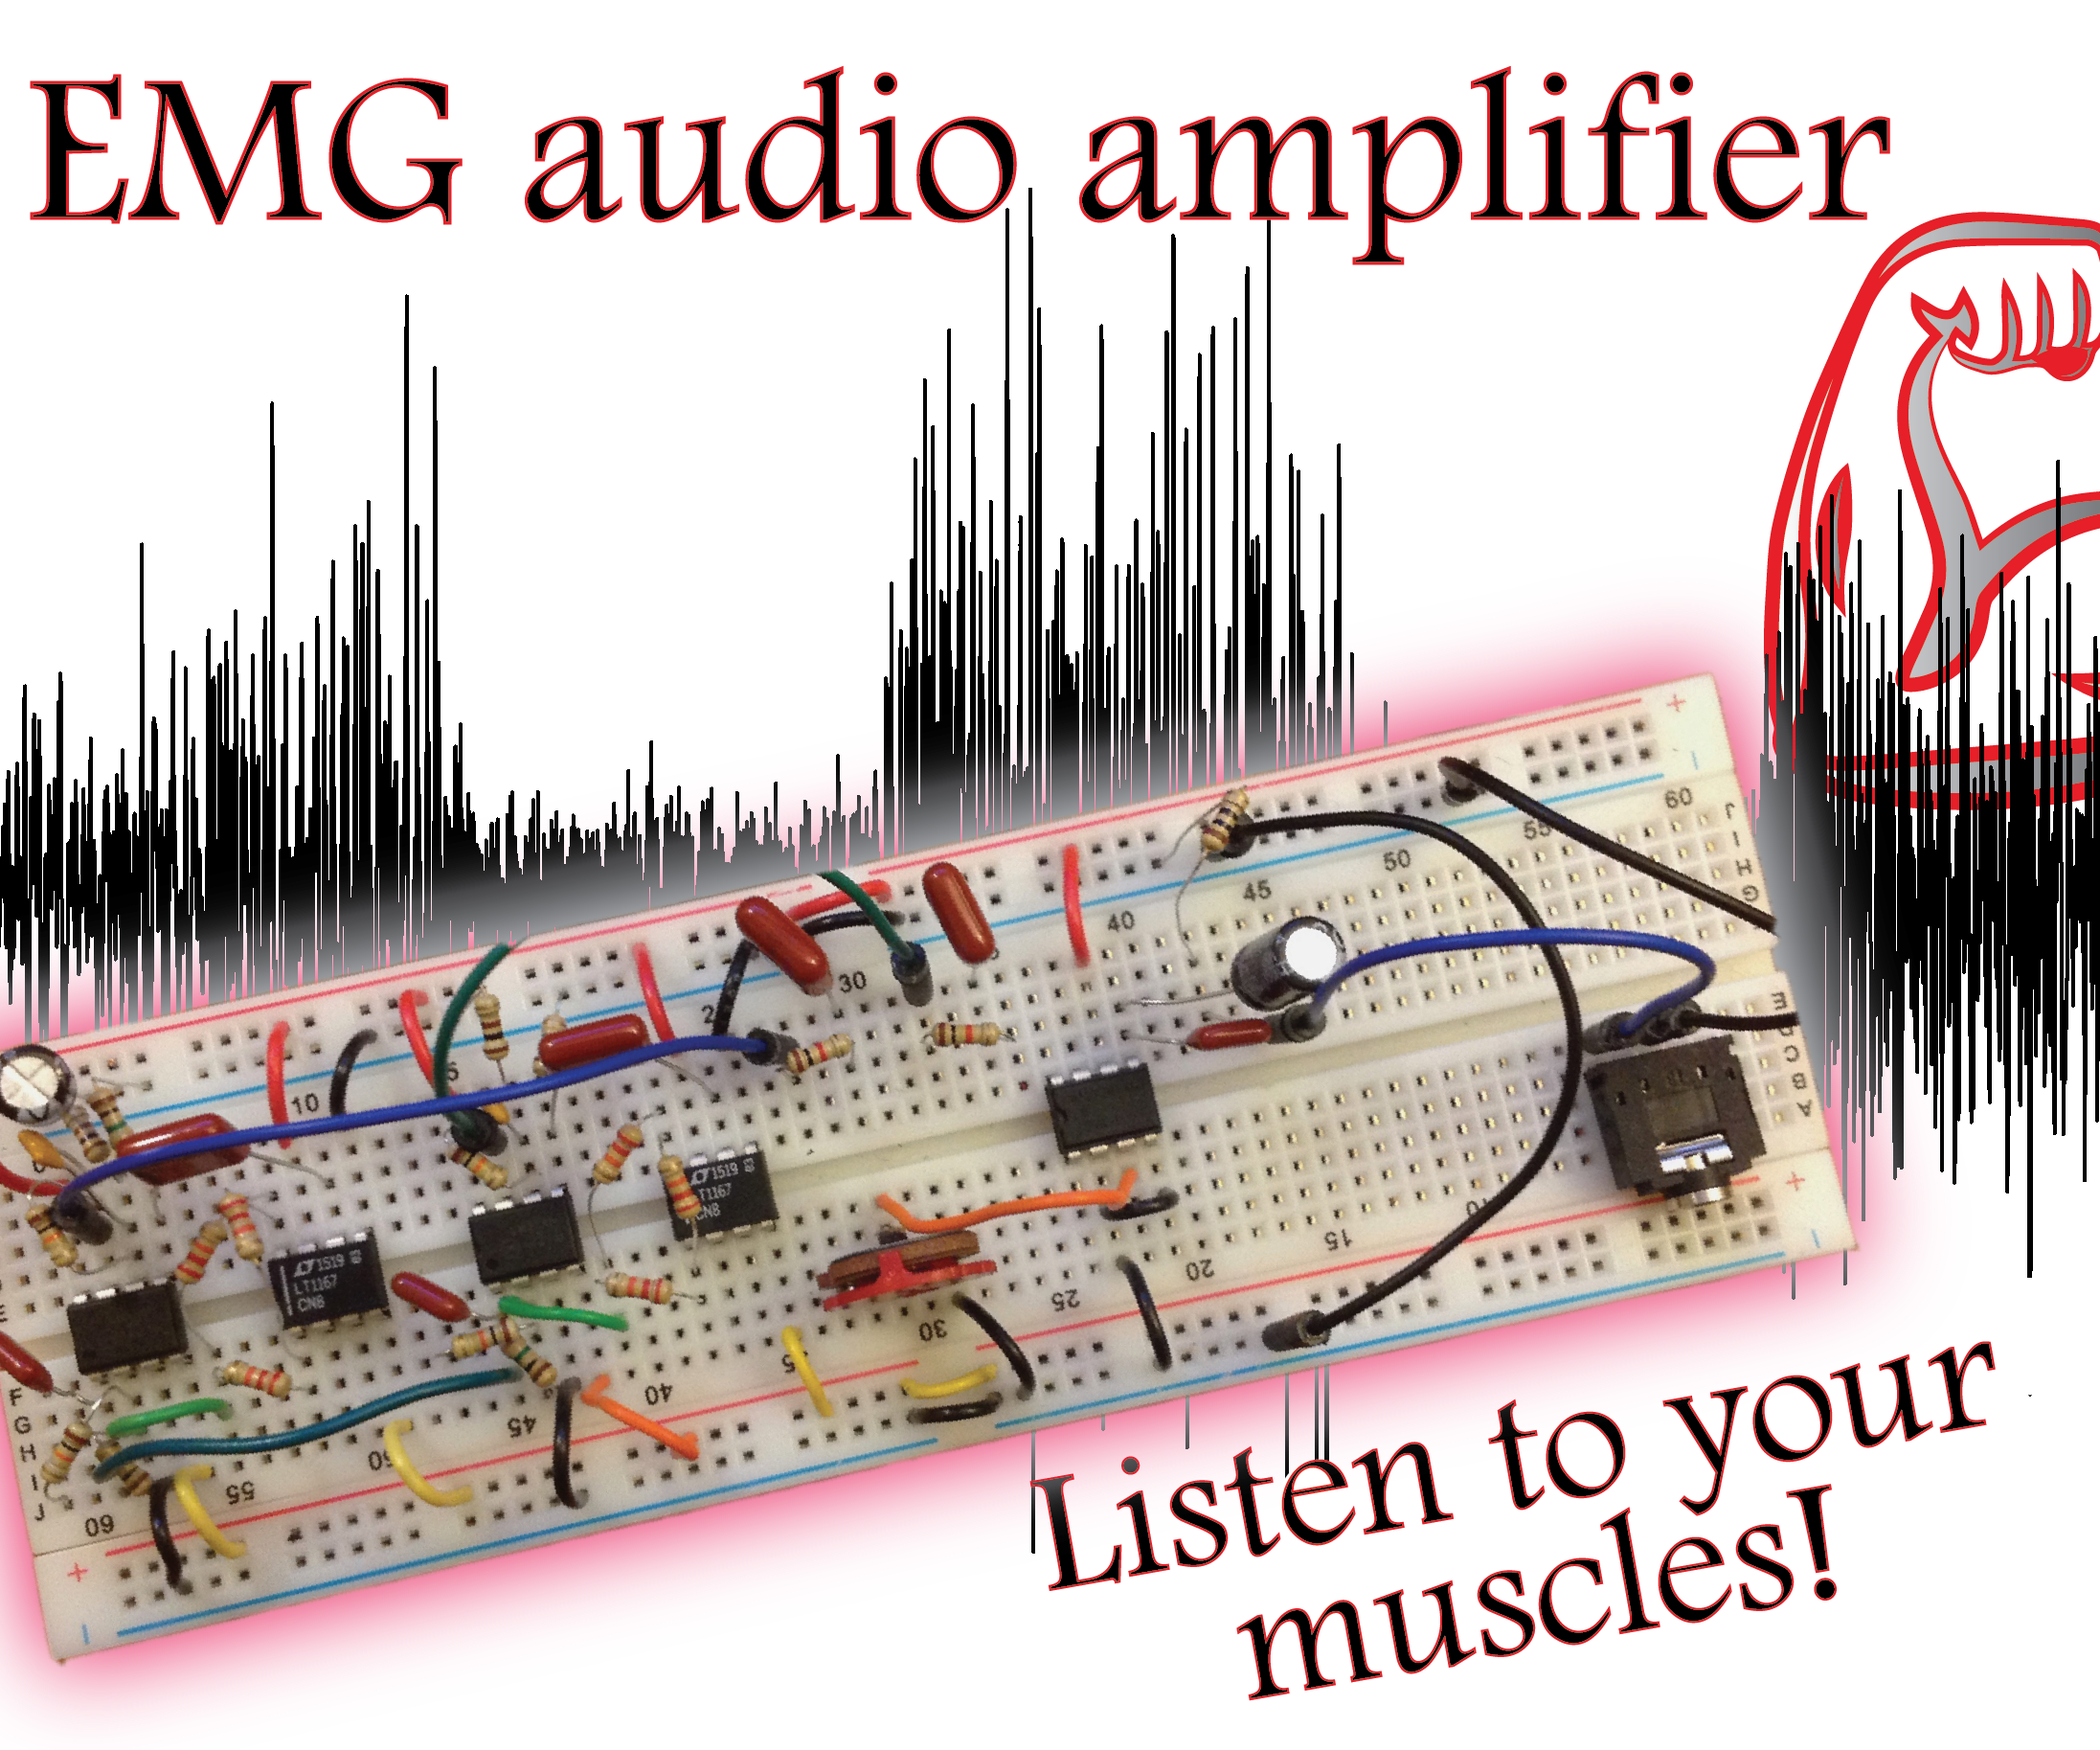 Build An Emg Audio Amplifier Electromyography 8 Steps With Instrumentation Cmrr Calibration Pictures